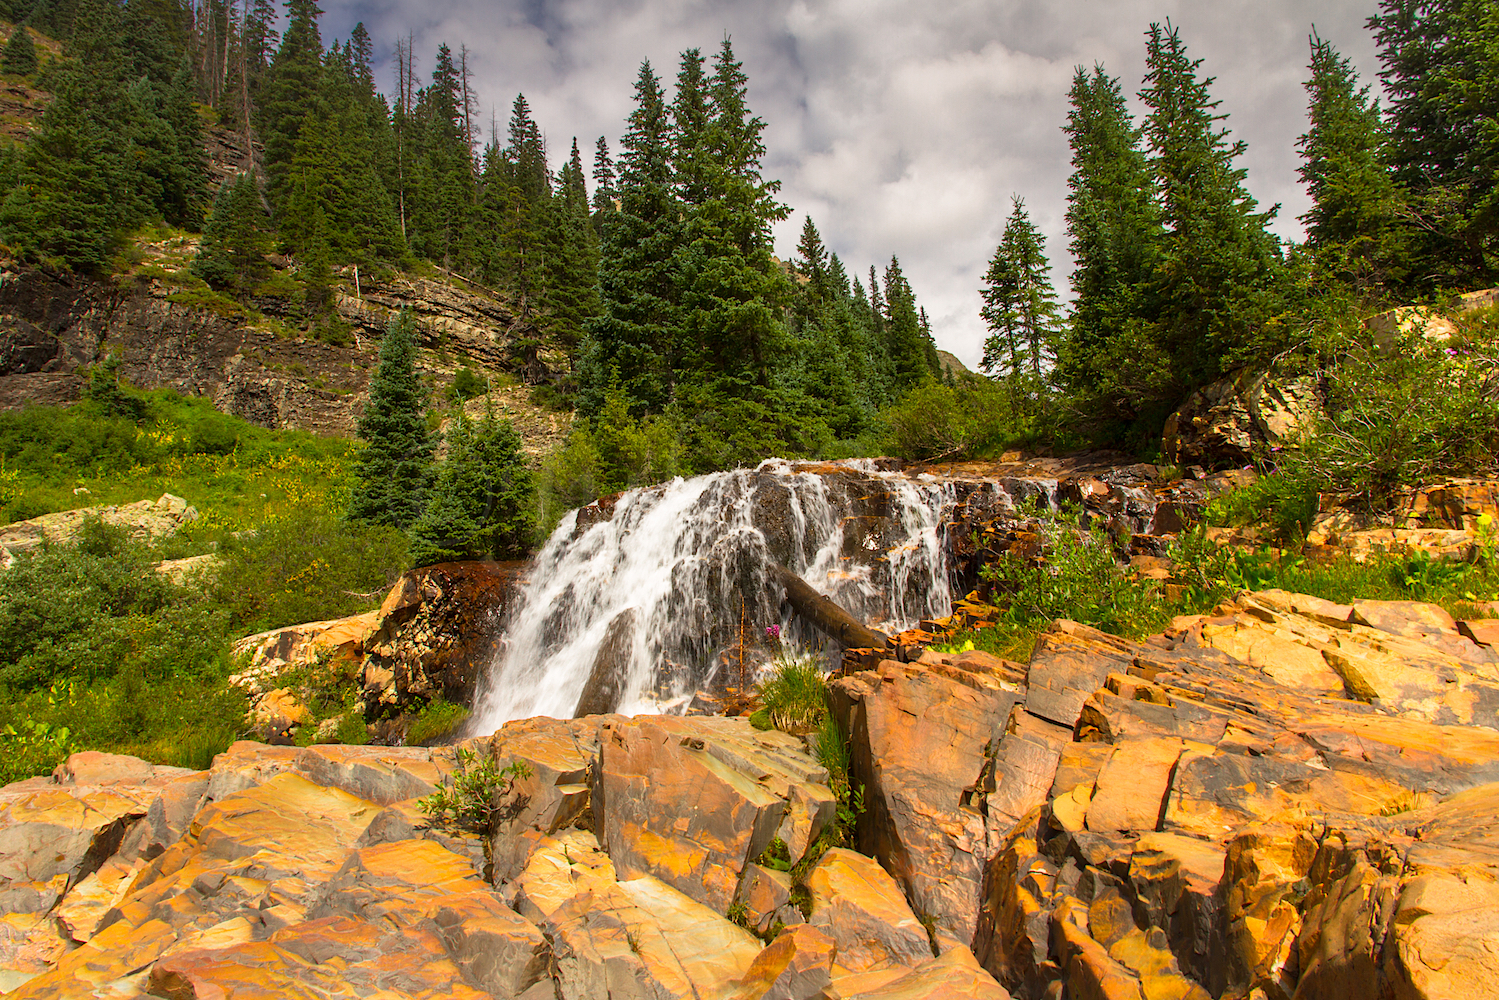 CASCADE DIVIDE WATERFALL, IMAGE # 5154